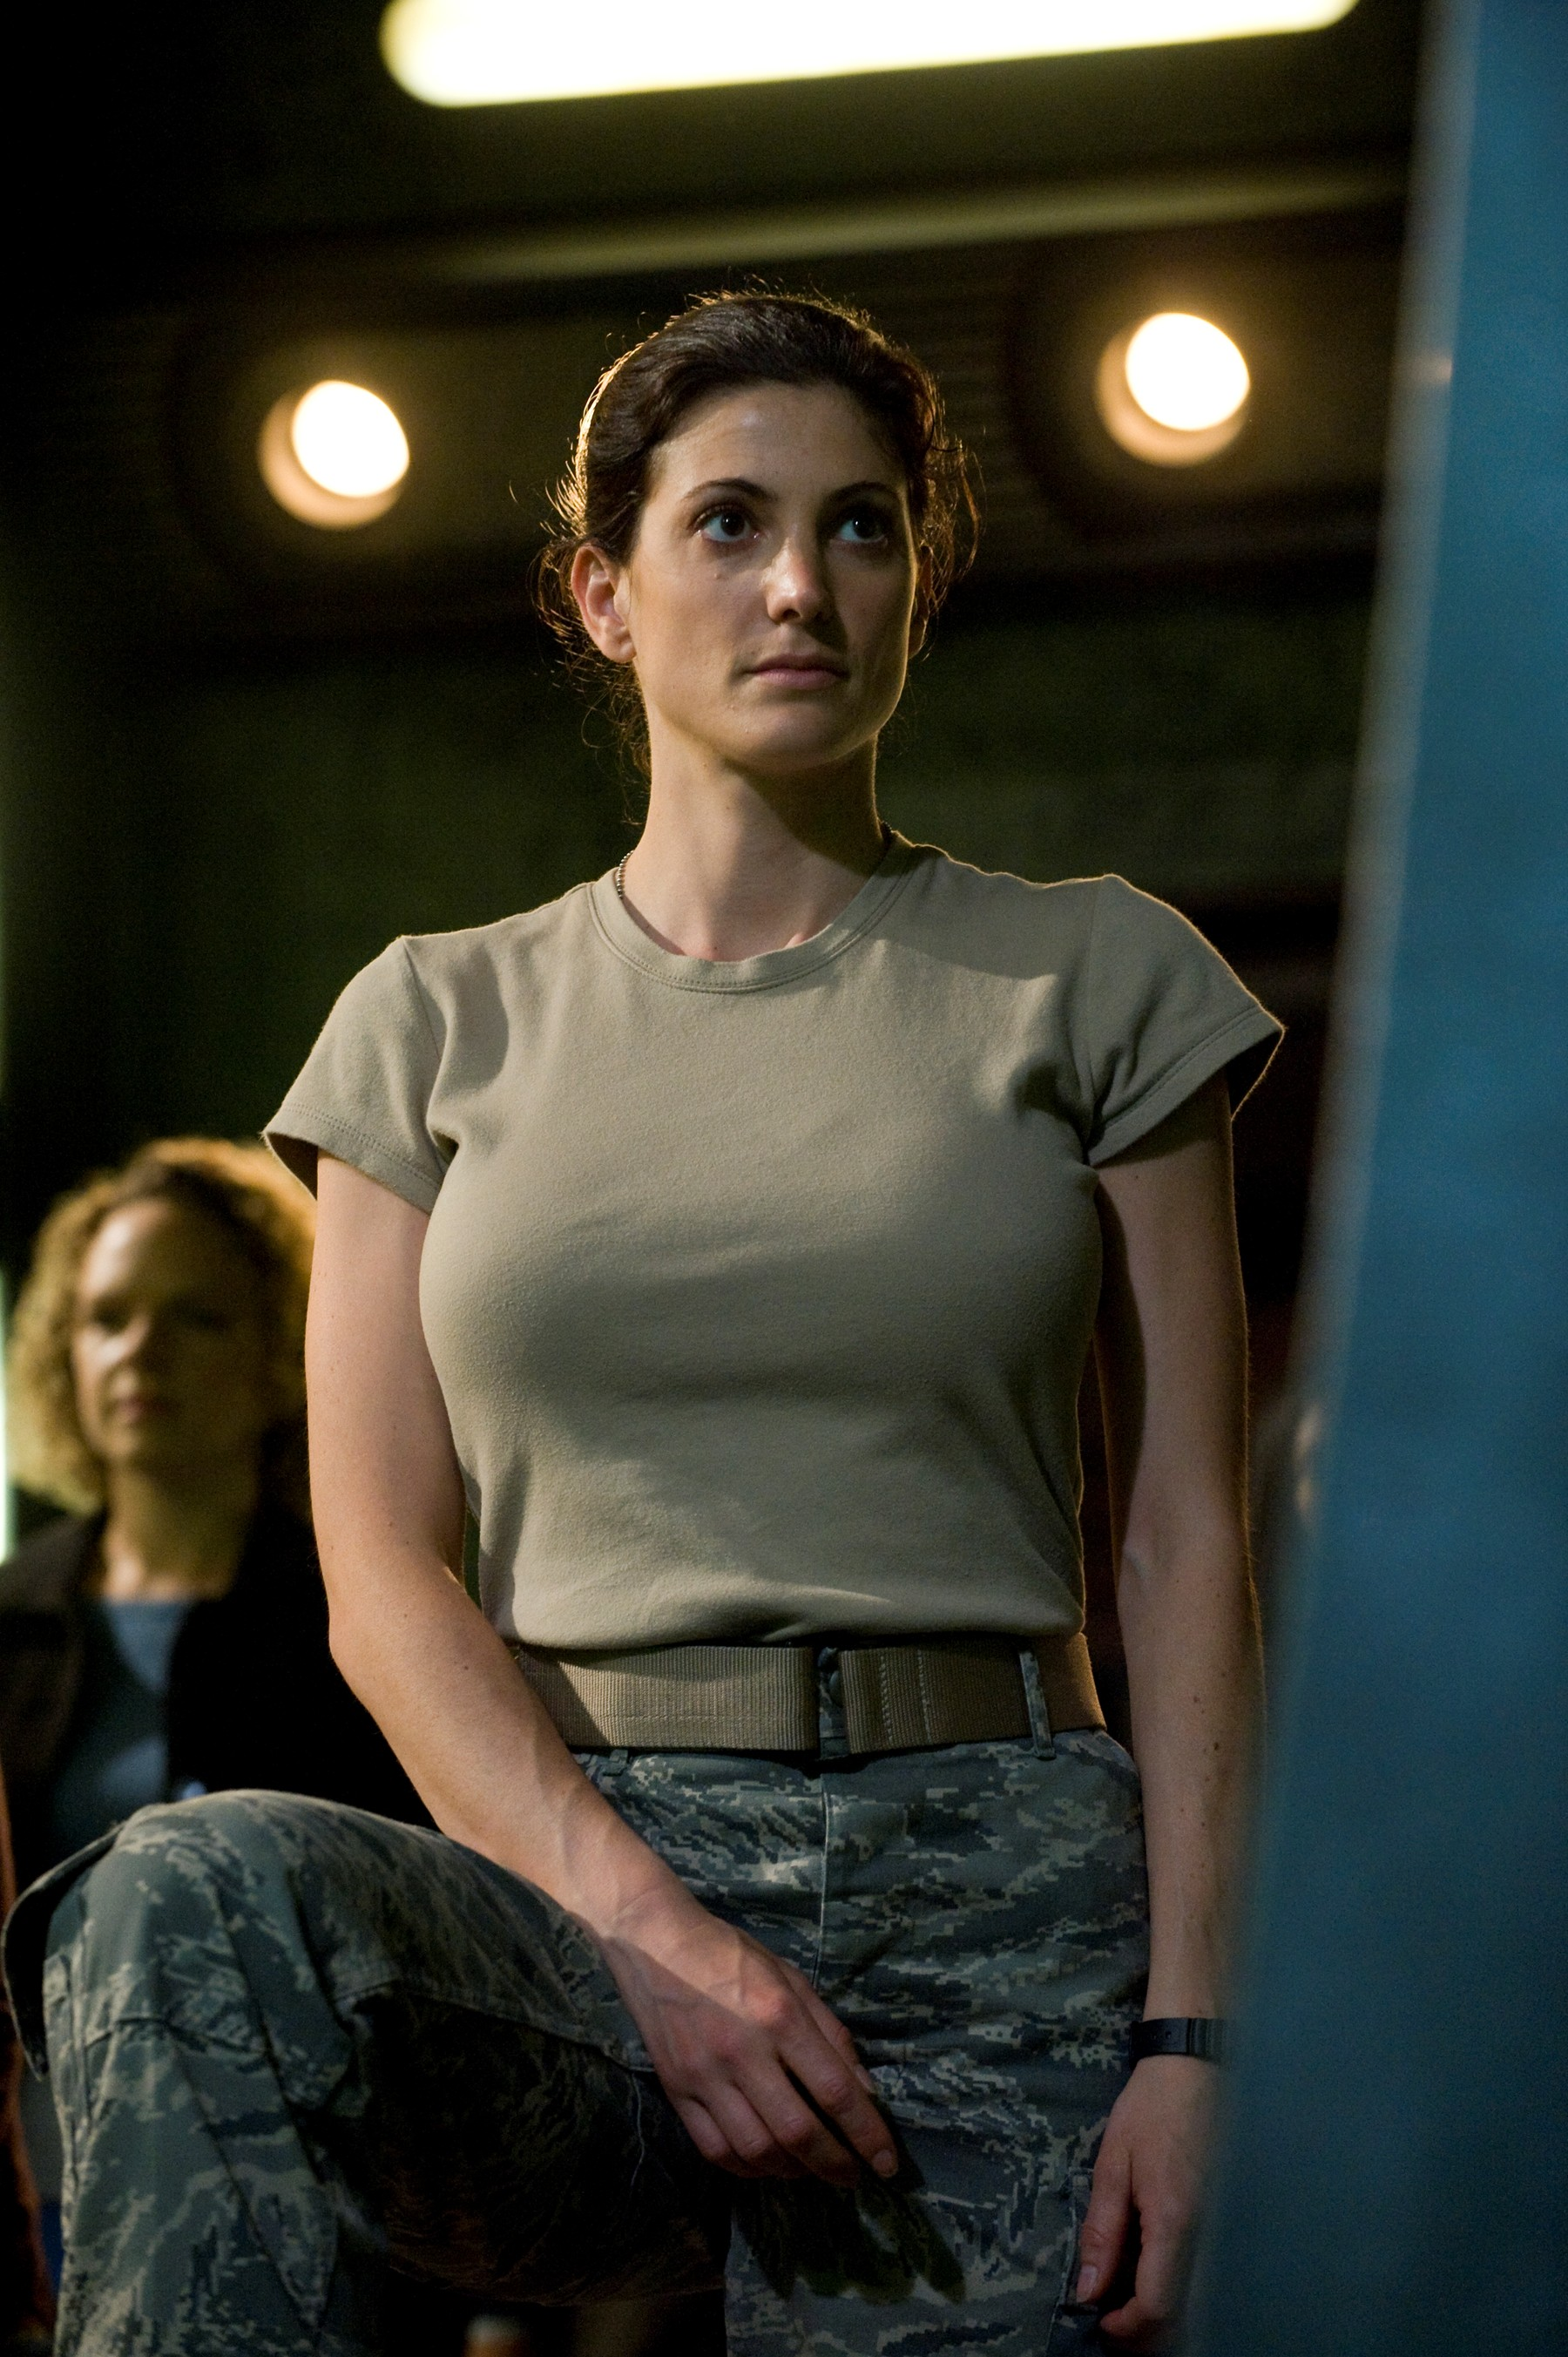 Amanda Tapping Boobs casting bias against busty actresses? - straight dope